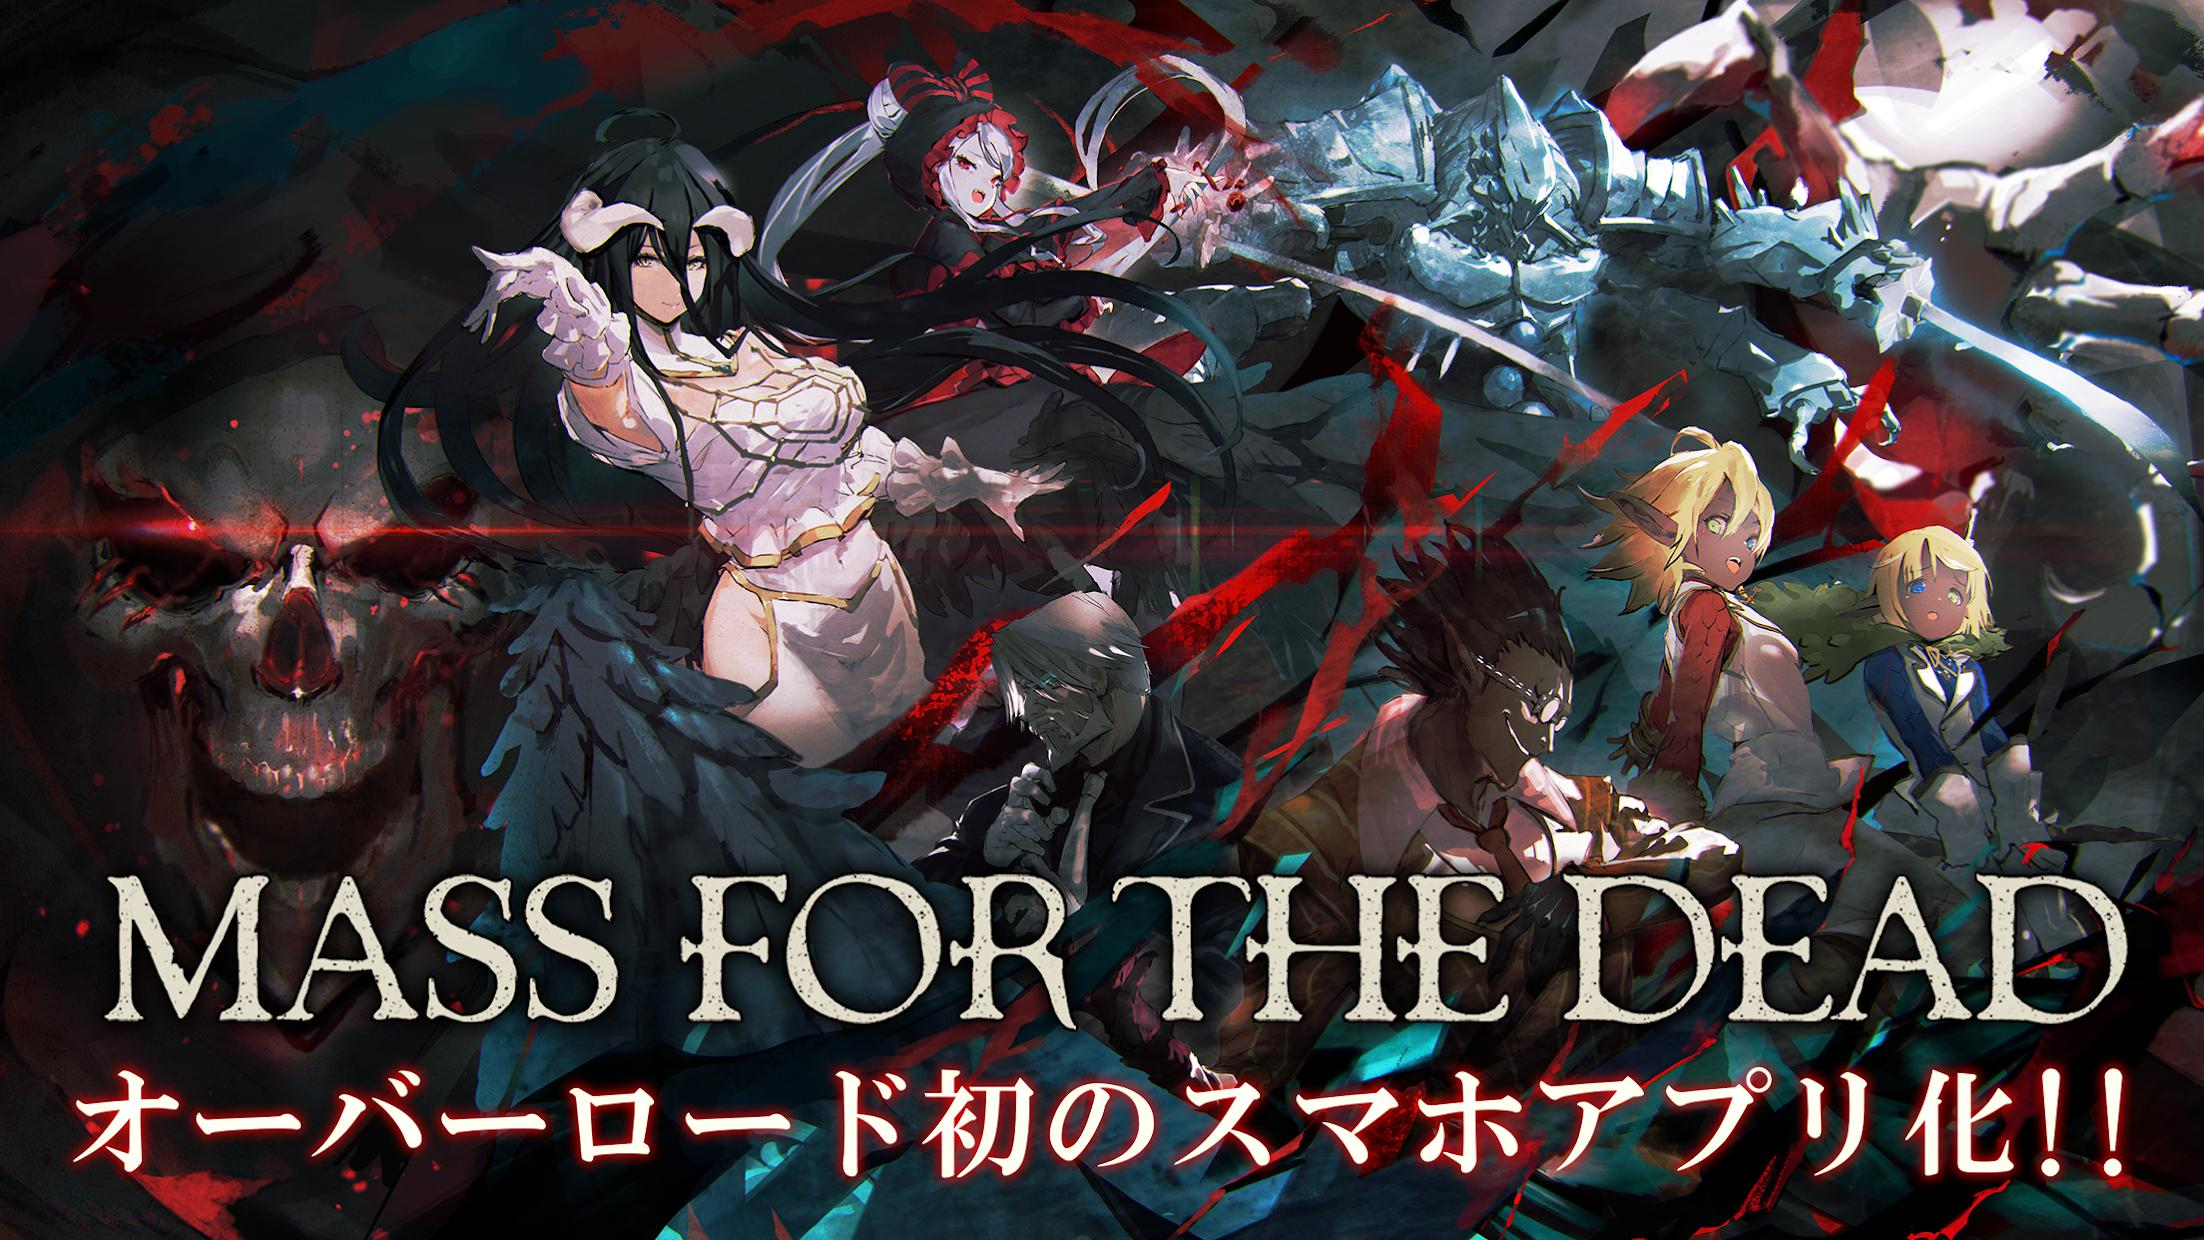 OVERLORD:MASS FOR THE DEAD 游戏截图1